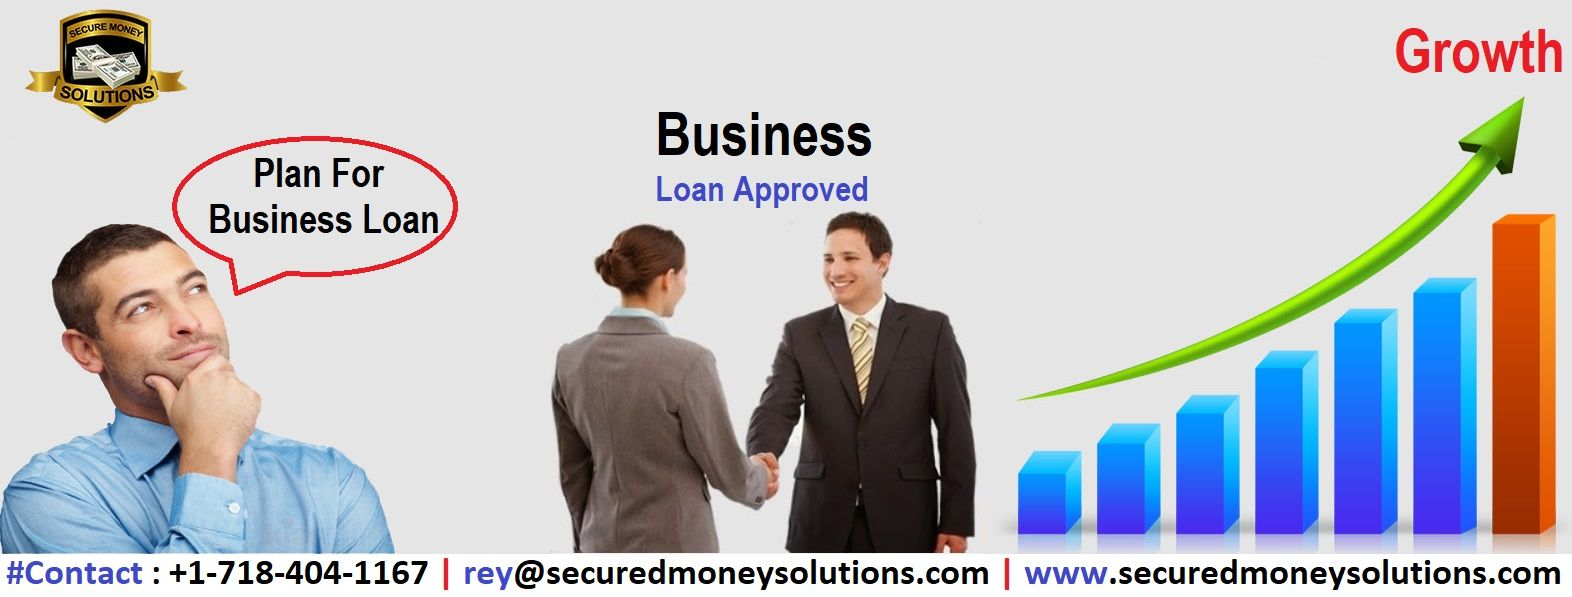 When Banks Say No We Say Yes Secured Money Solutions Is Offering Online Business Loan Services So You Can Ea Business Loans Online Business Business Planning